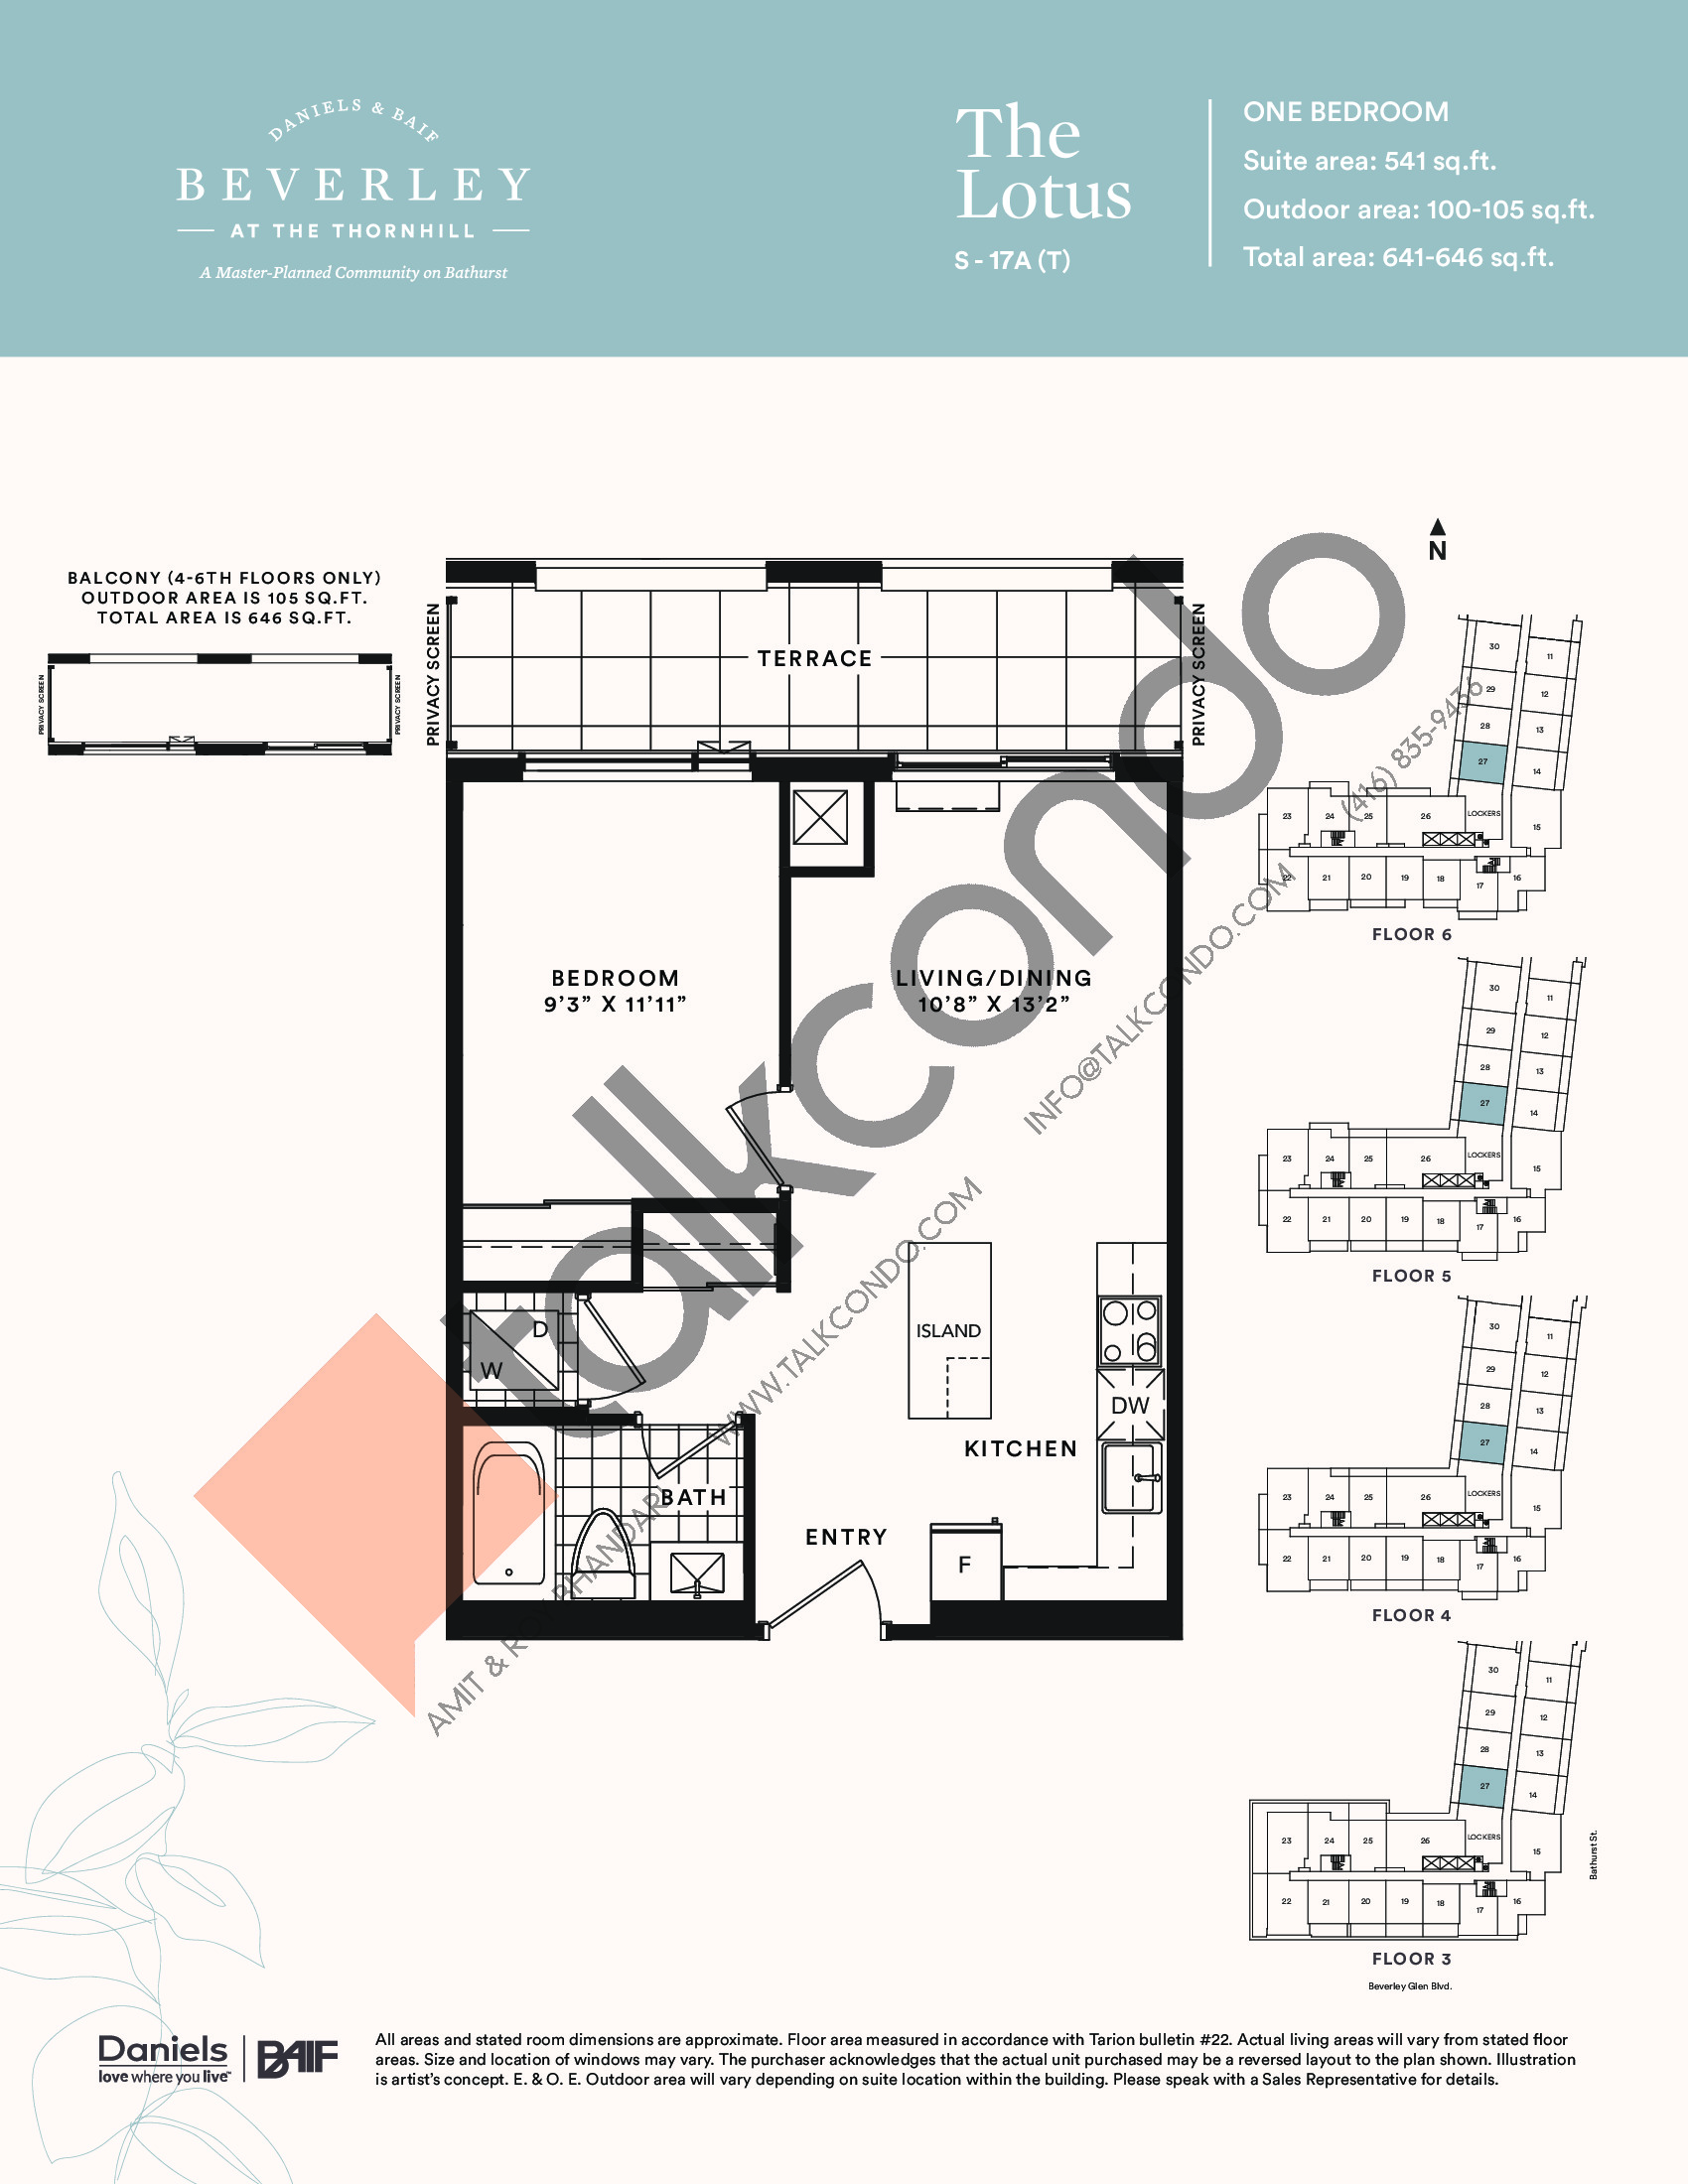 The Lotus Floor Plan at The Beverley at the Thornhill Condos - 541 sq.ft